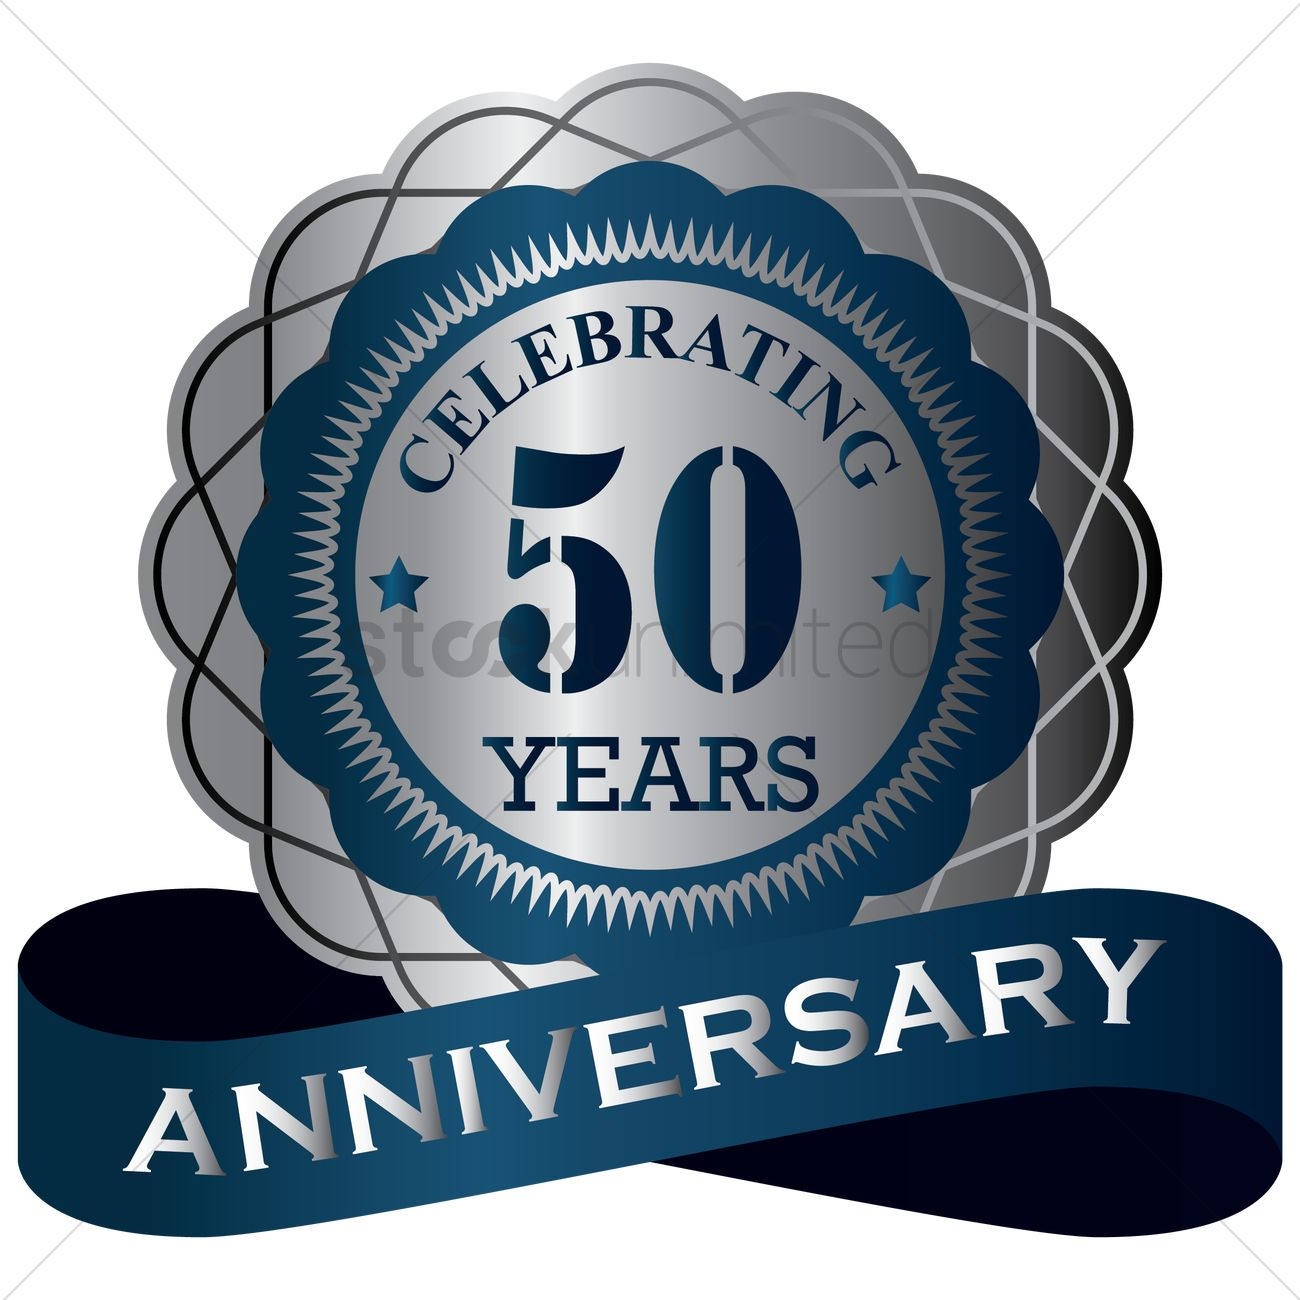 50 Years Anniversary Label Vector Image 1414740 Stockunlimited